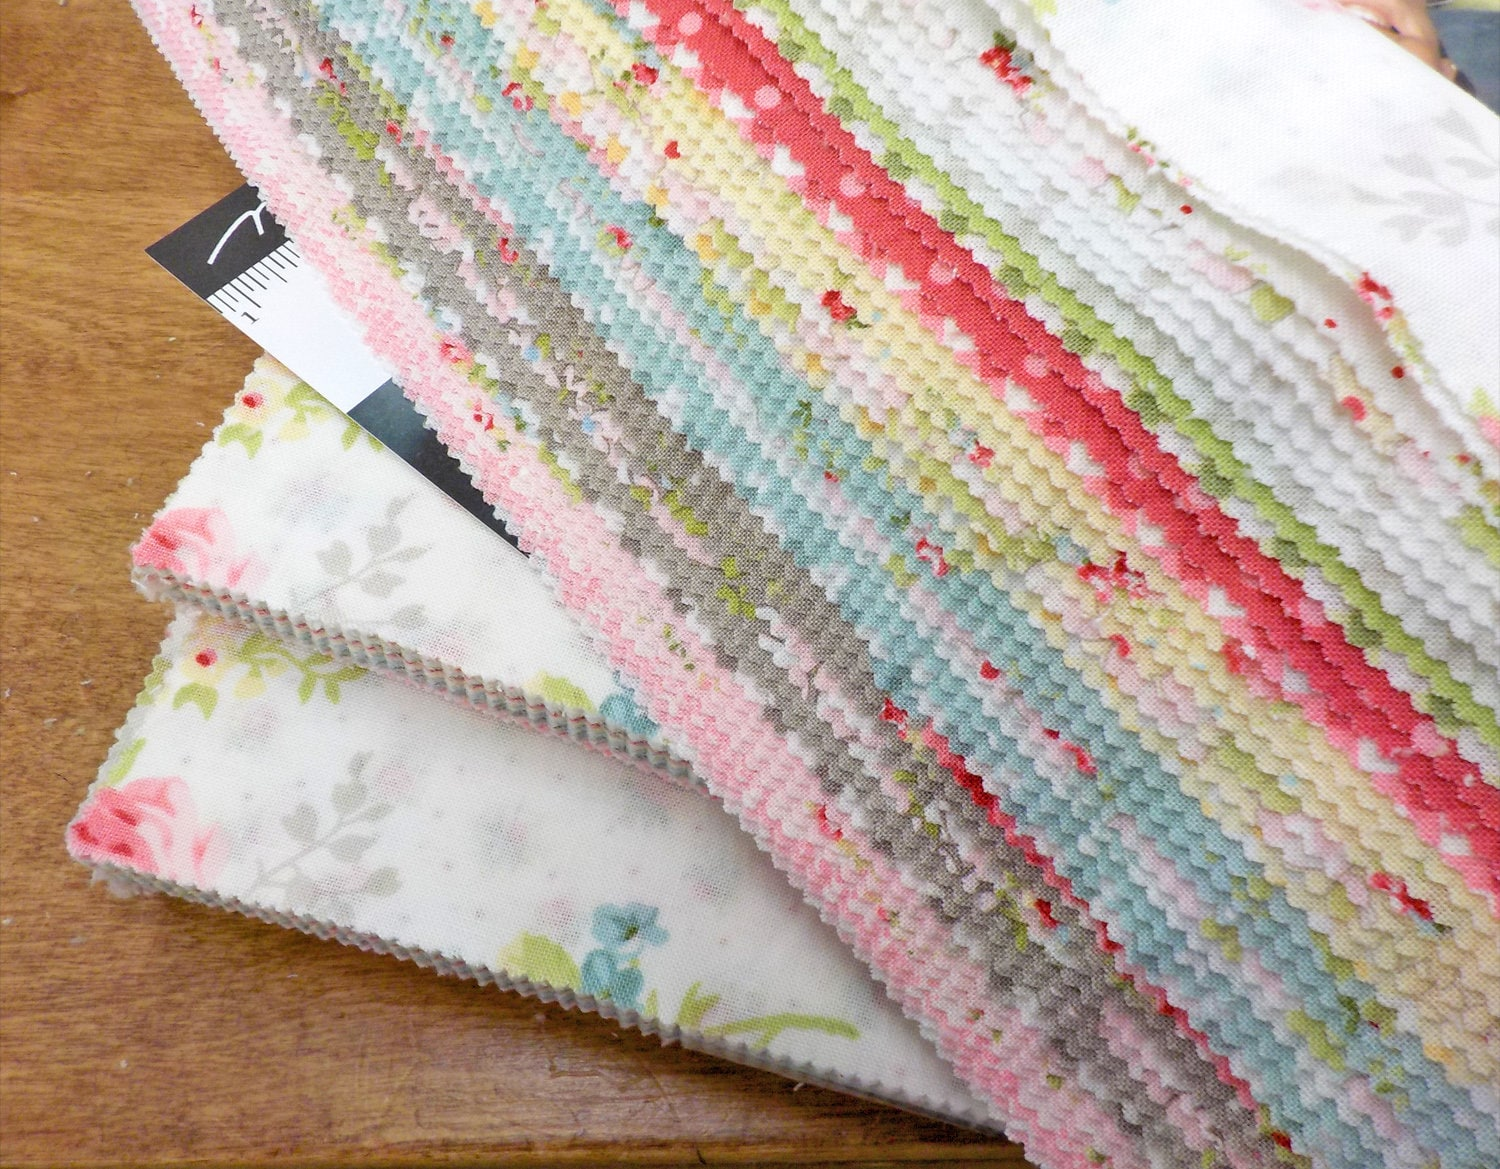 Moda Fabric Guernsey Layer Cake Patchwork Quilting 10 Inch Squares